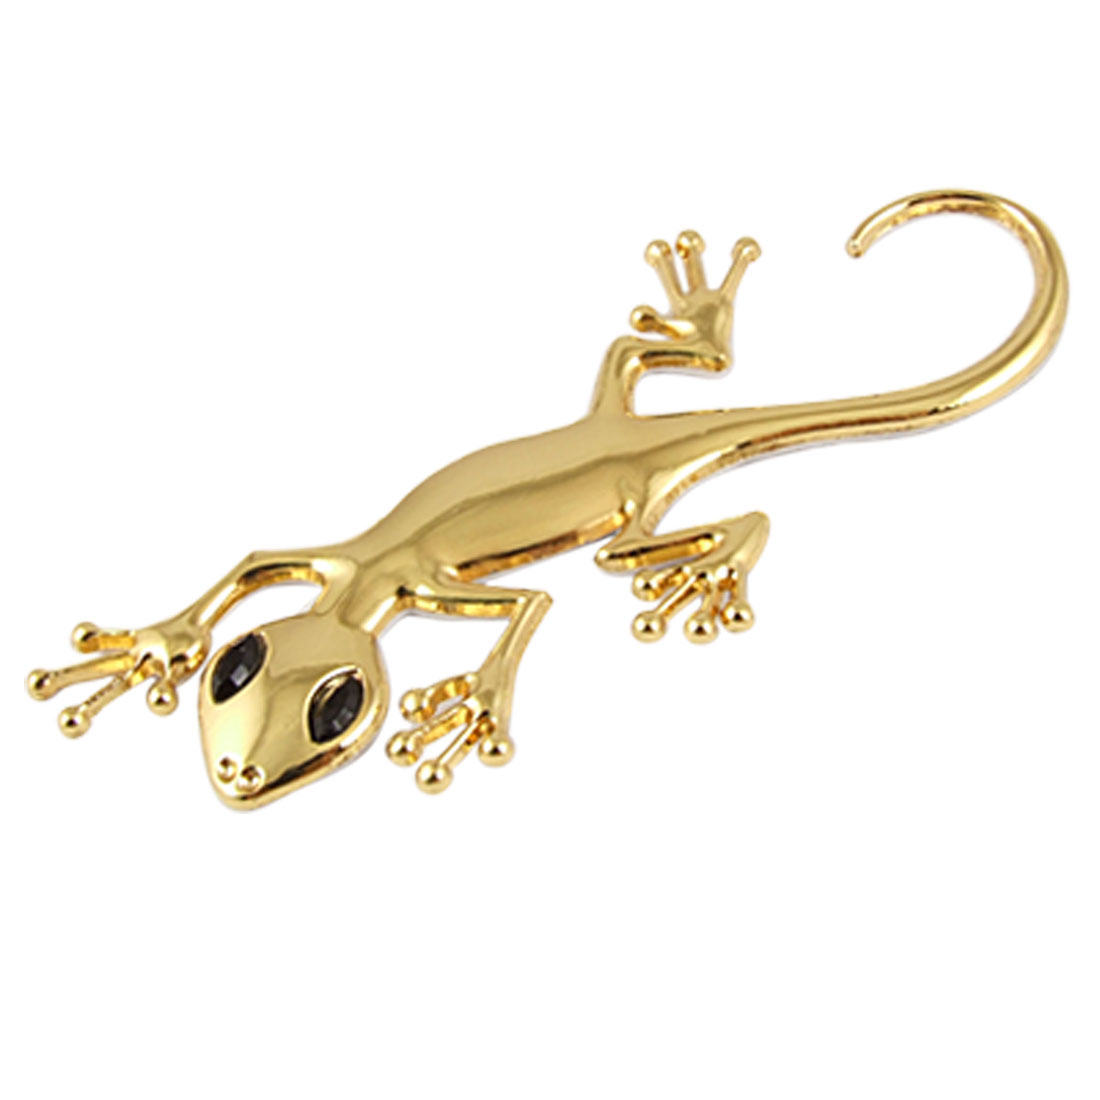 Gold Tone 3D Gecko Shaped Emblem Badge Self-adhesive Sticker for Car